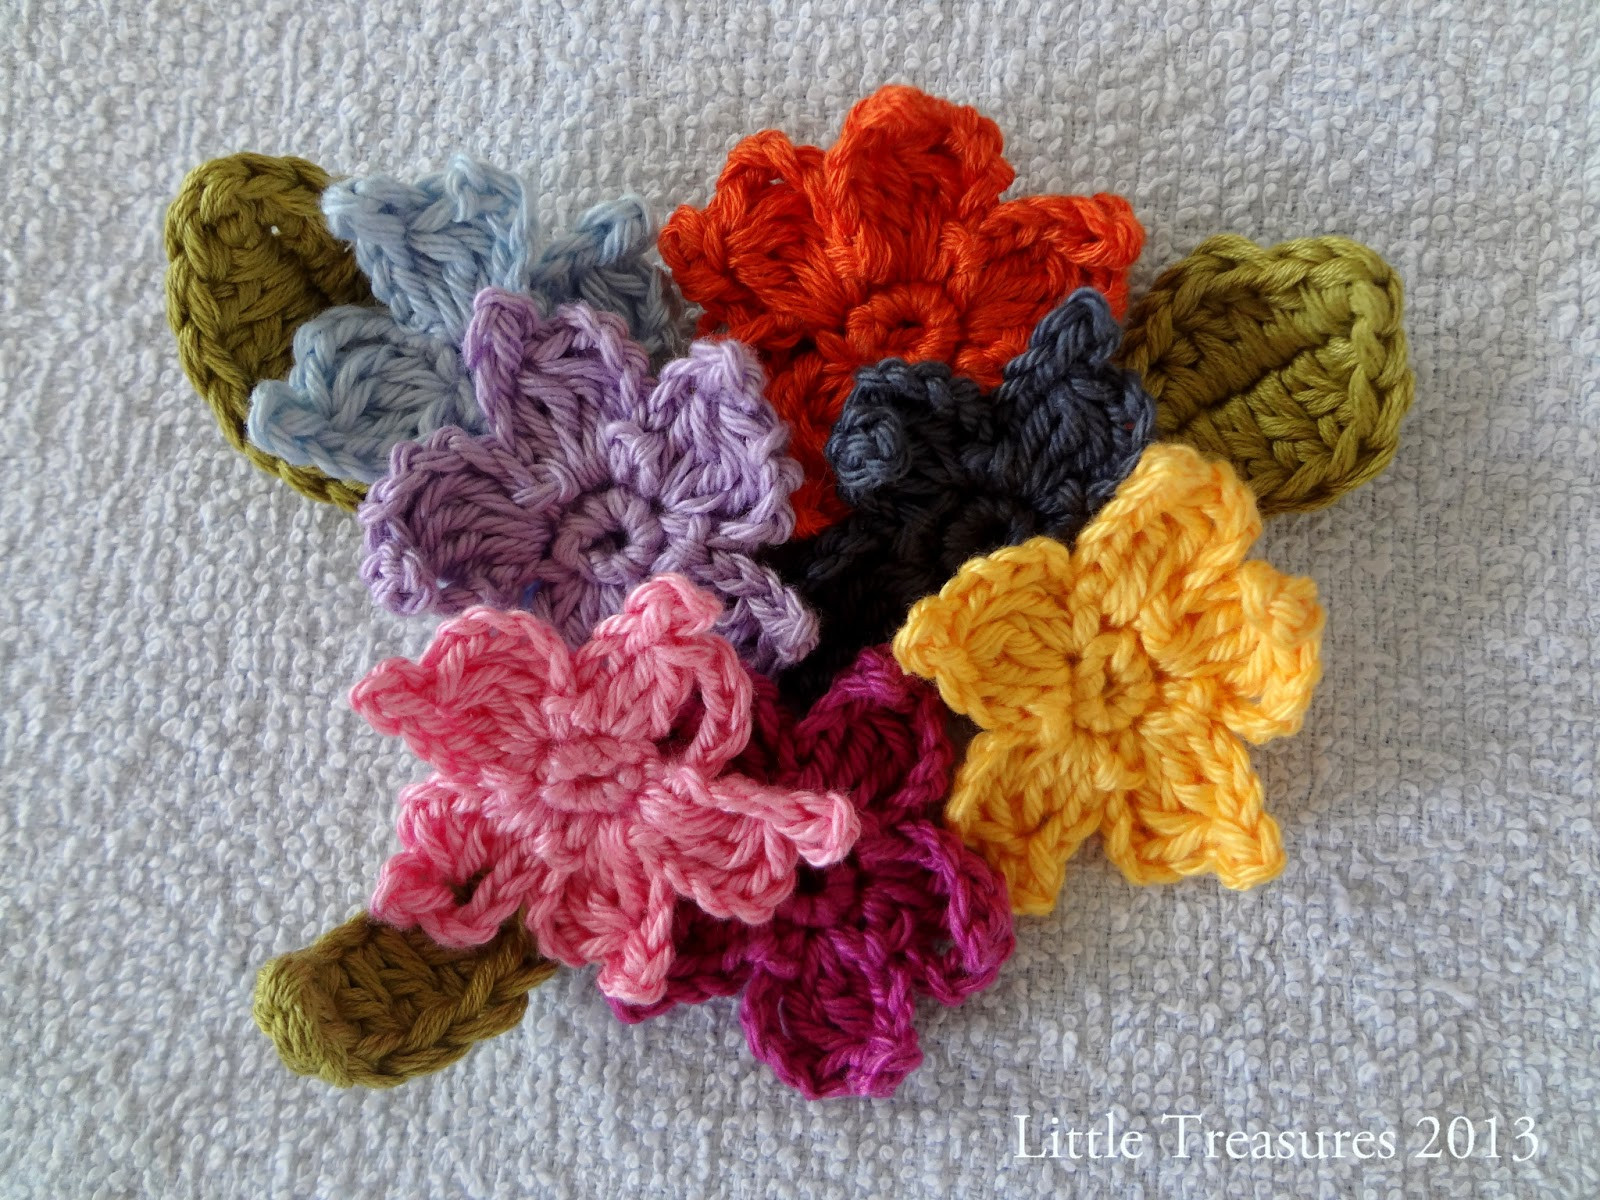 Little Treasures Adenium free crochet flower tutorial